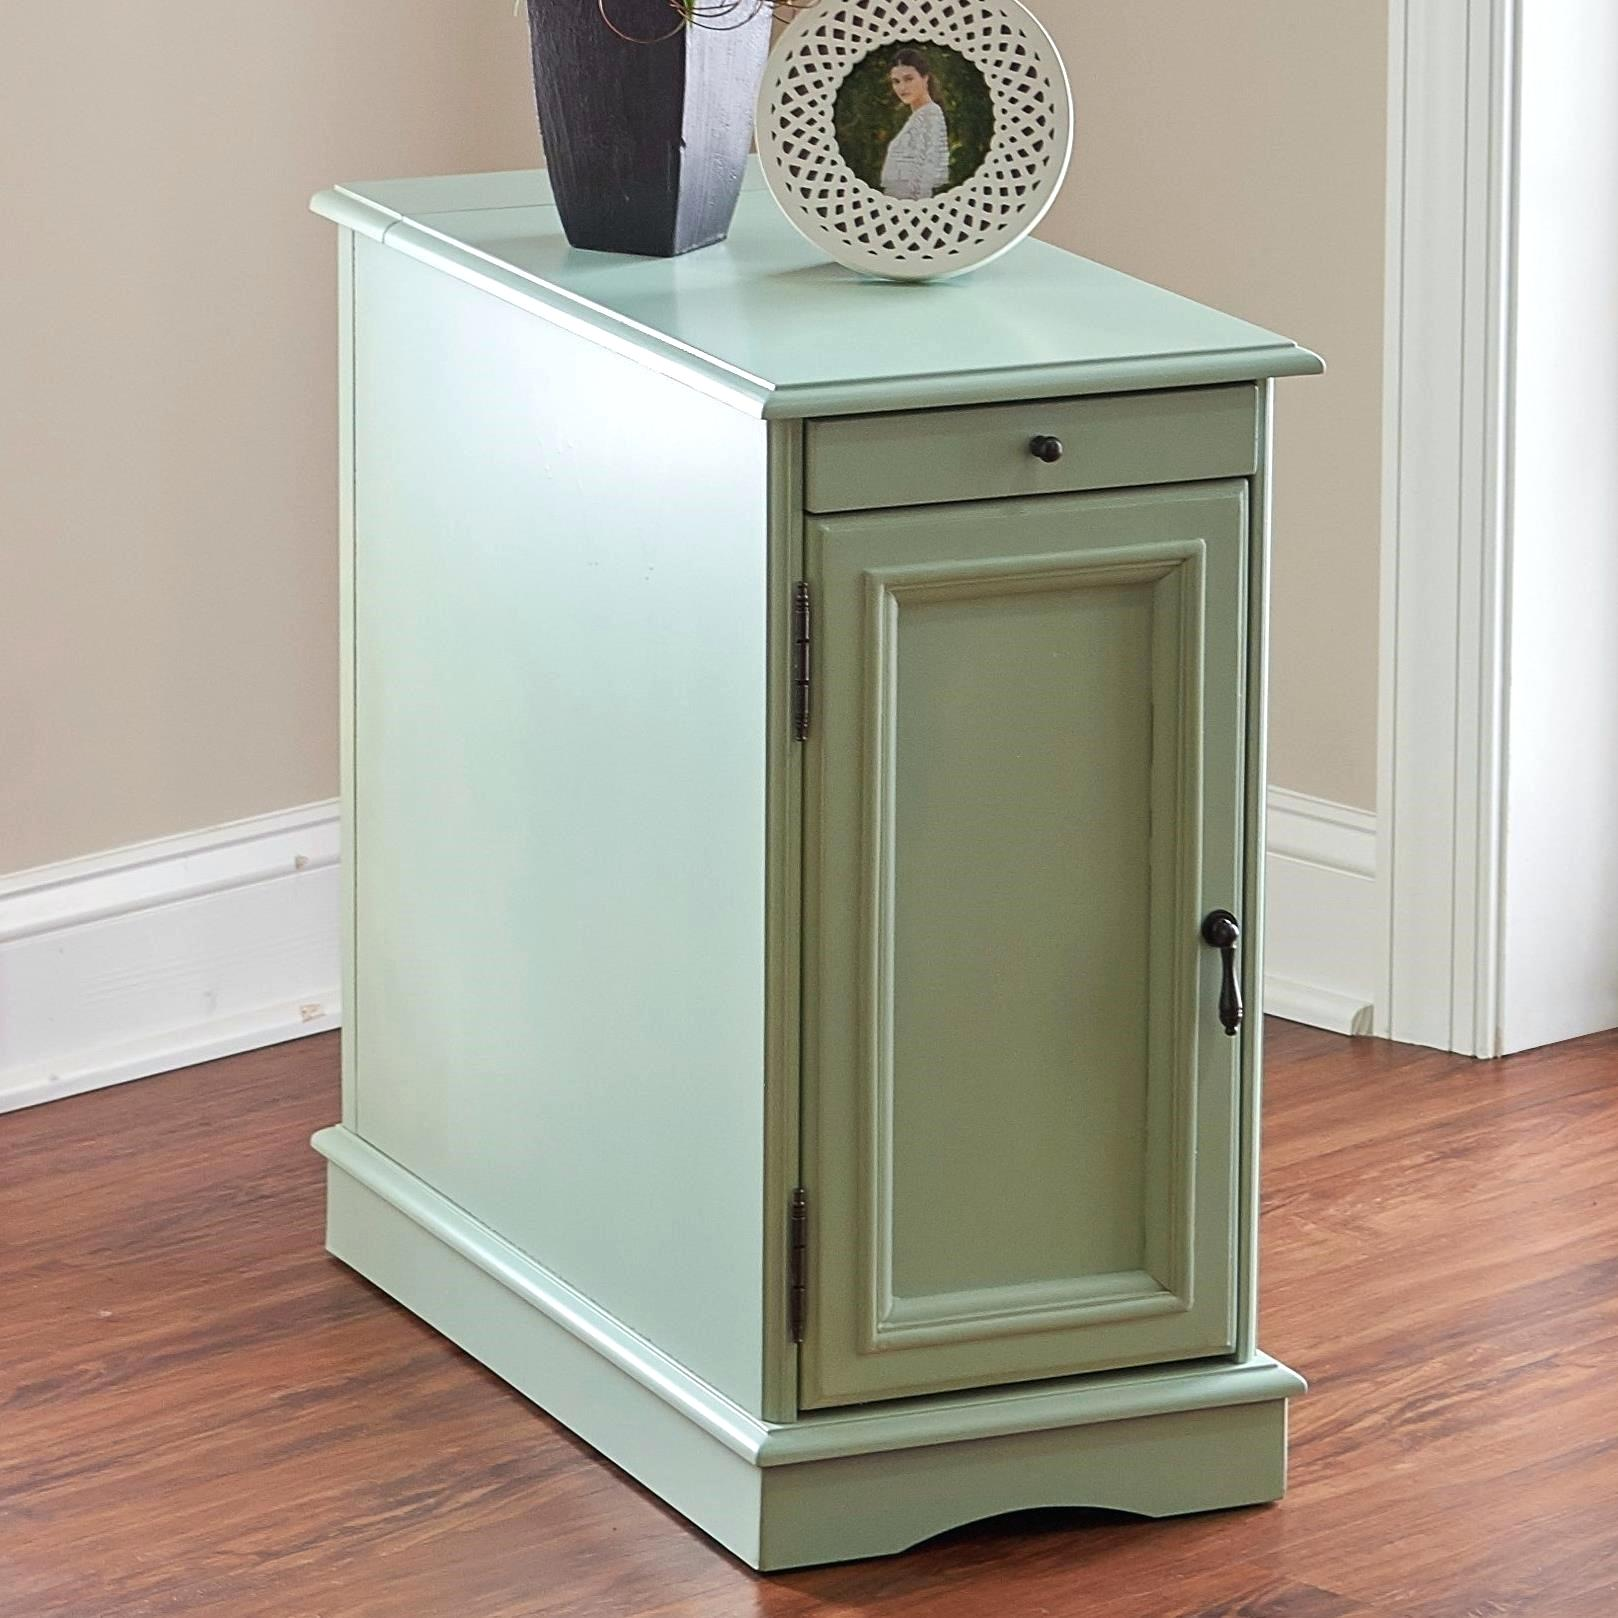 butler accent table driftwood round furniture aqua loft durable small rustoleum paint colors target bar outdoor bench nightstands toronto patio and chairs pottery barn front door